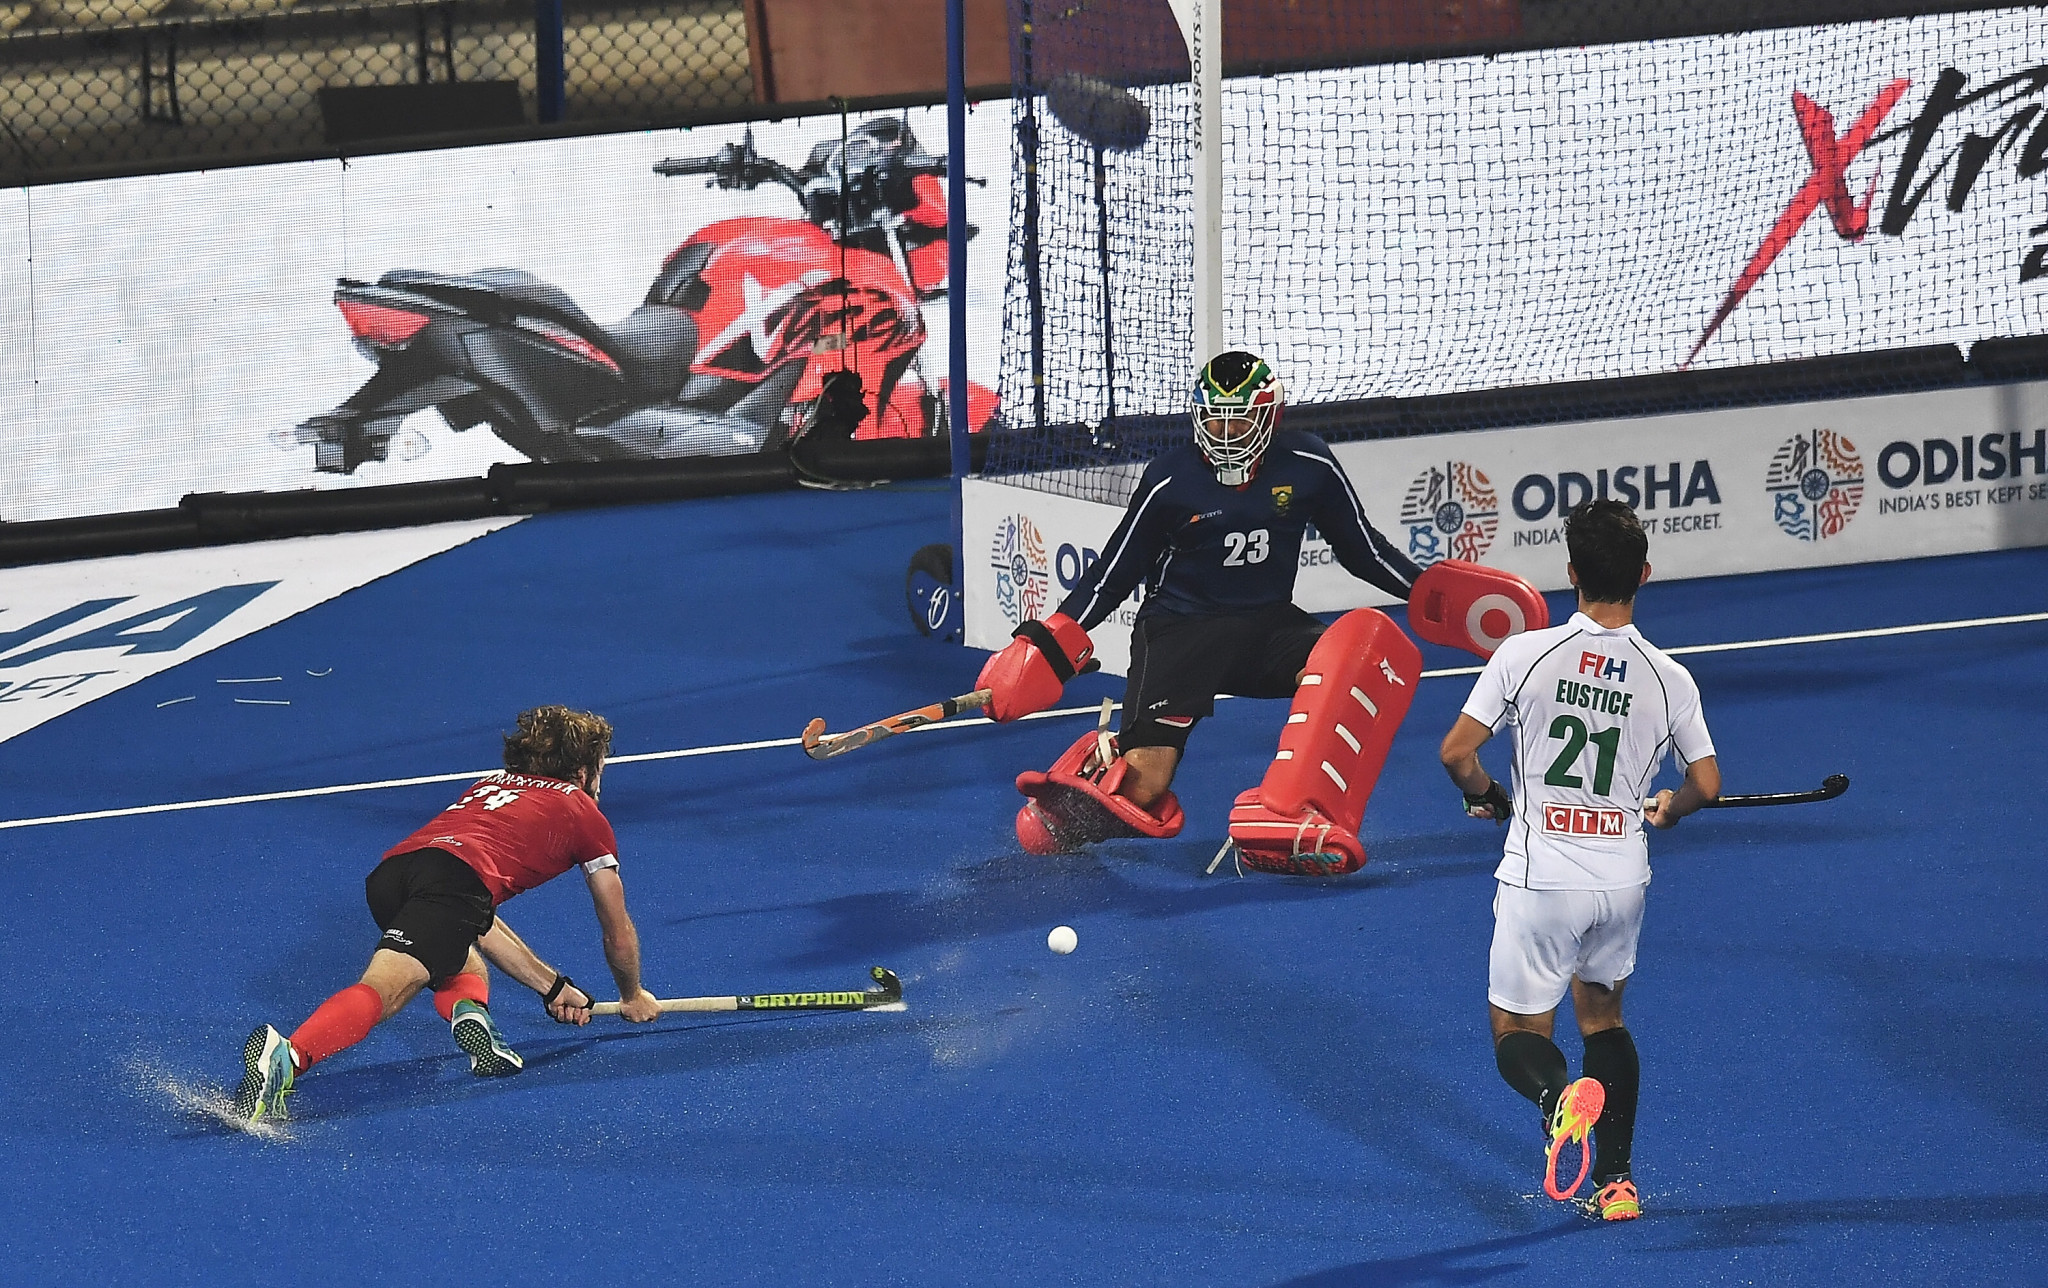 Universal use of four quarter match format among new rules implemented by FIH